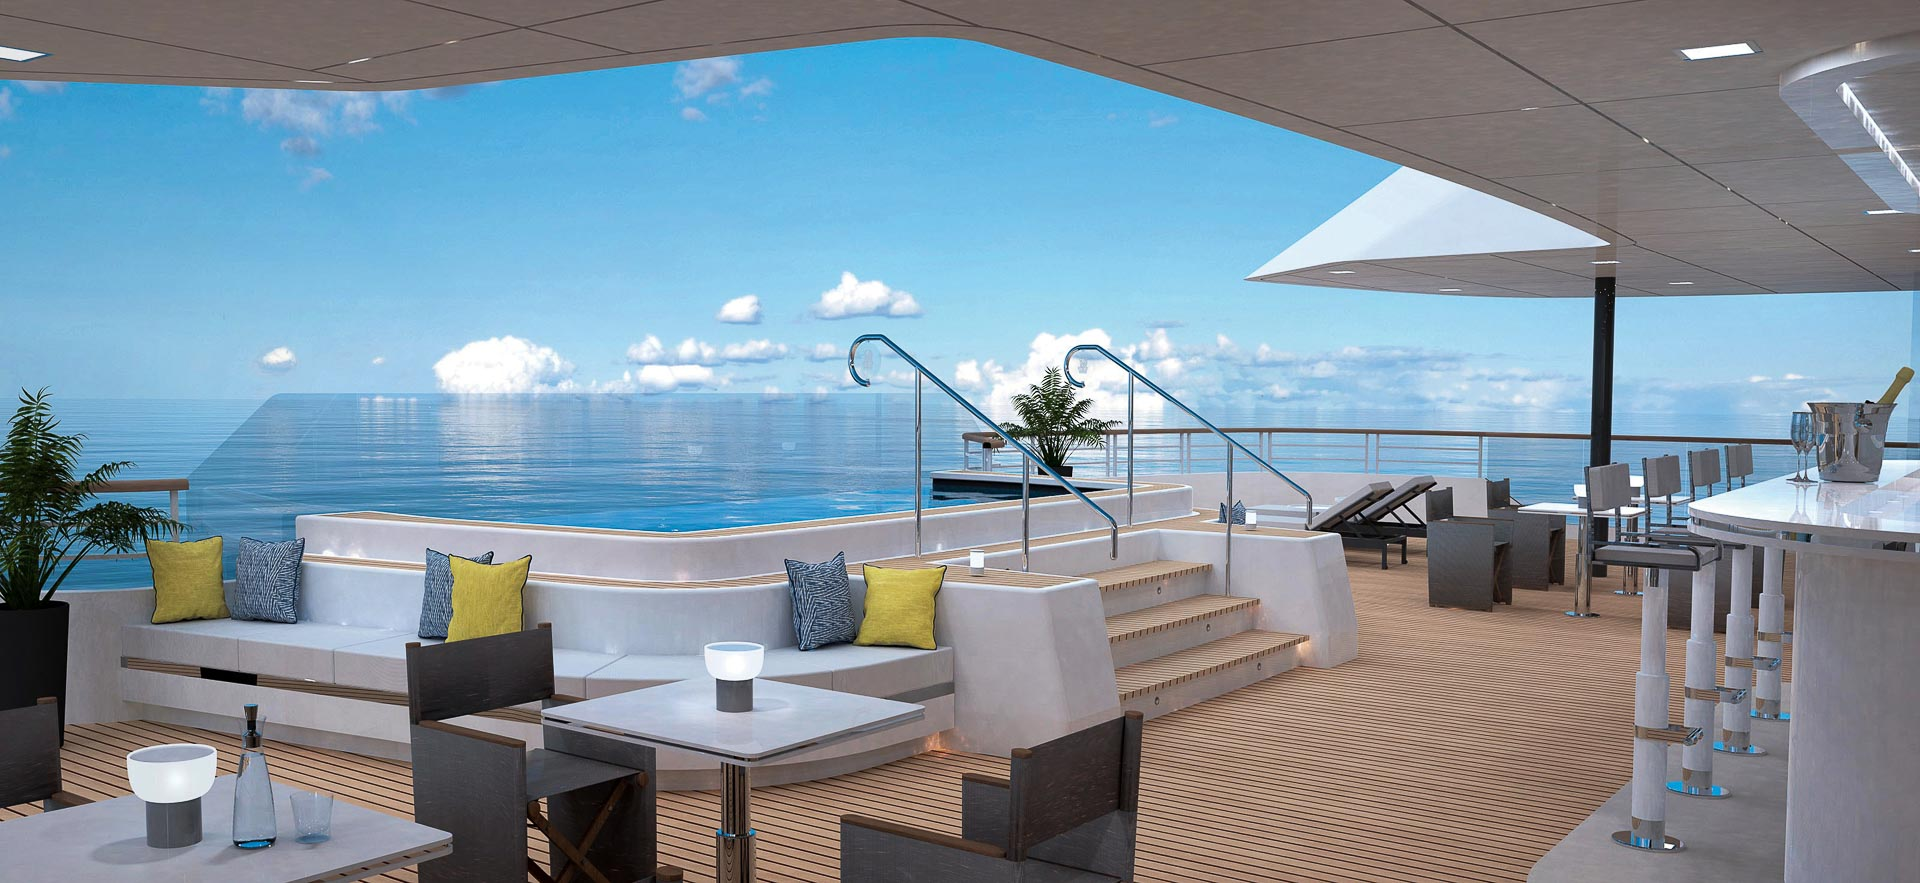 The Ritz-Carlton Yacht Collection - The Outdoor Grill